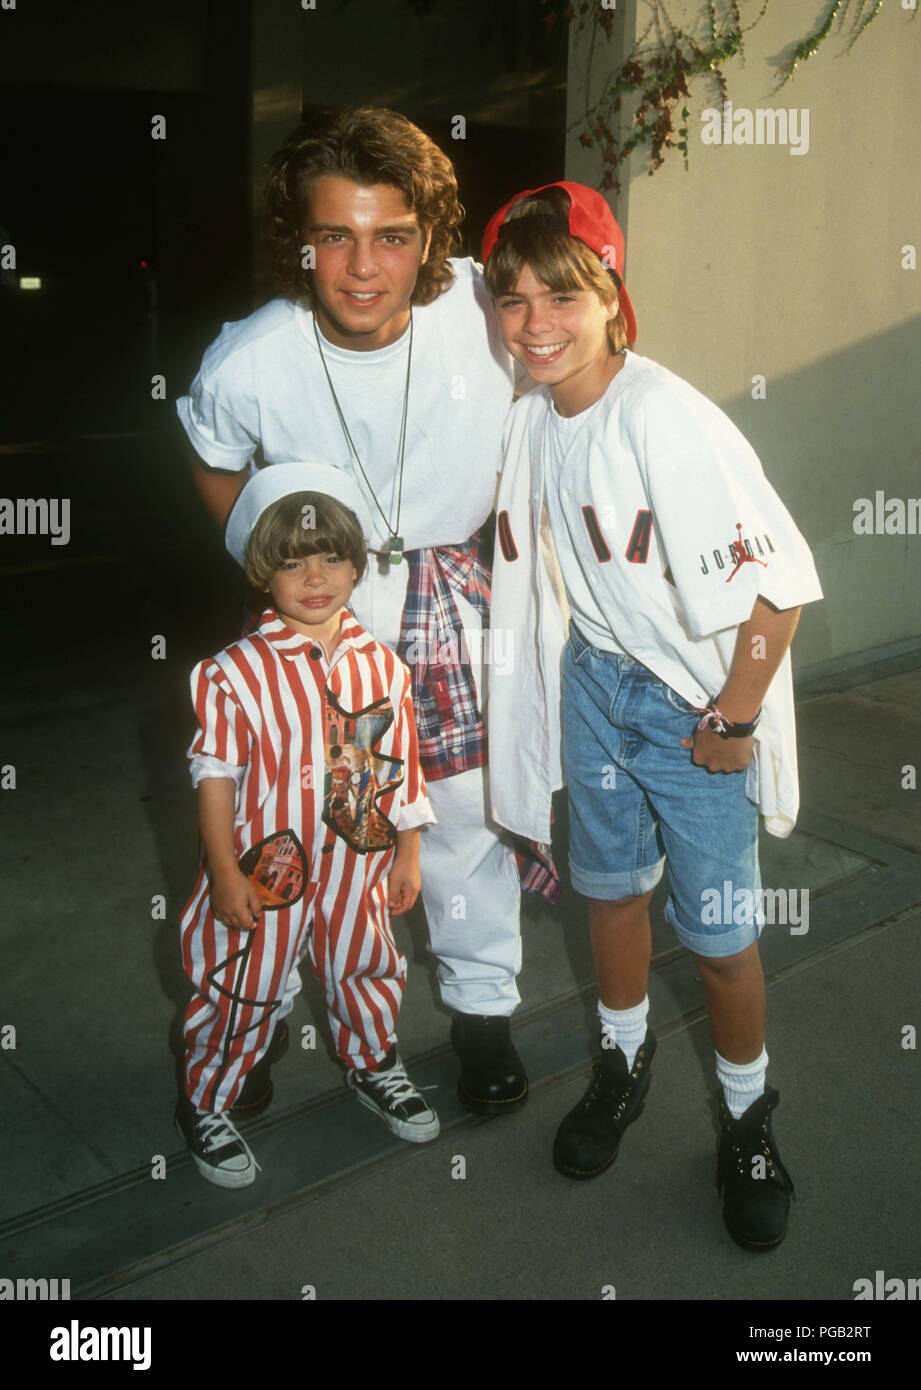 Andrew Lawrence Stock Photos Images Page 2 Smith Bermuda Shorts Navy 33 Westwood Ca August 3 L R Actors Brothers